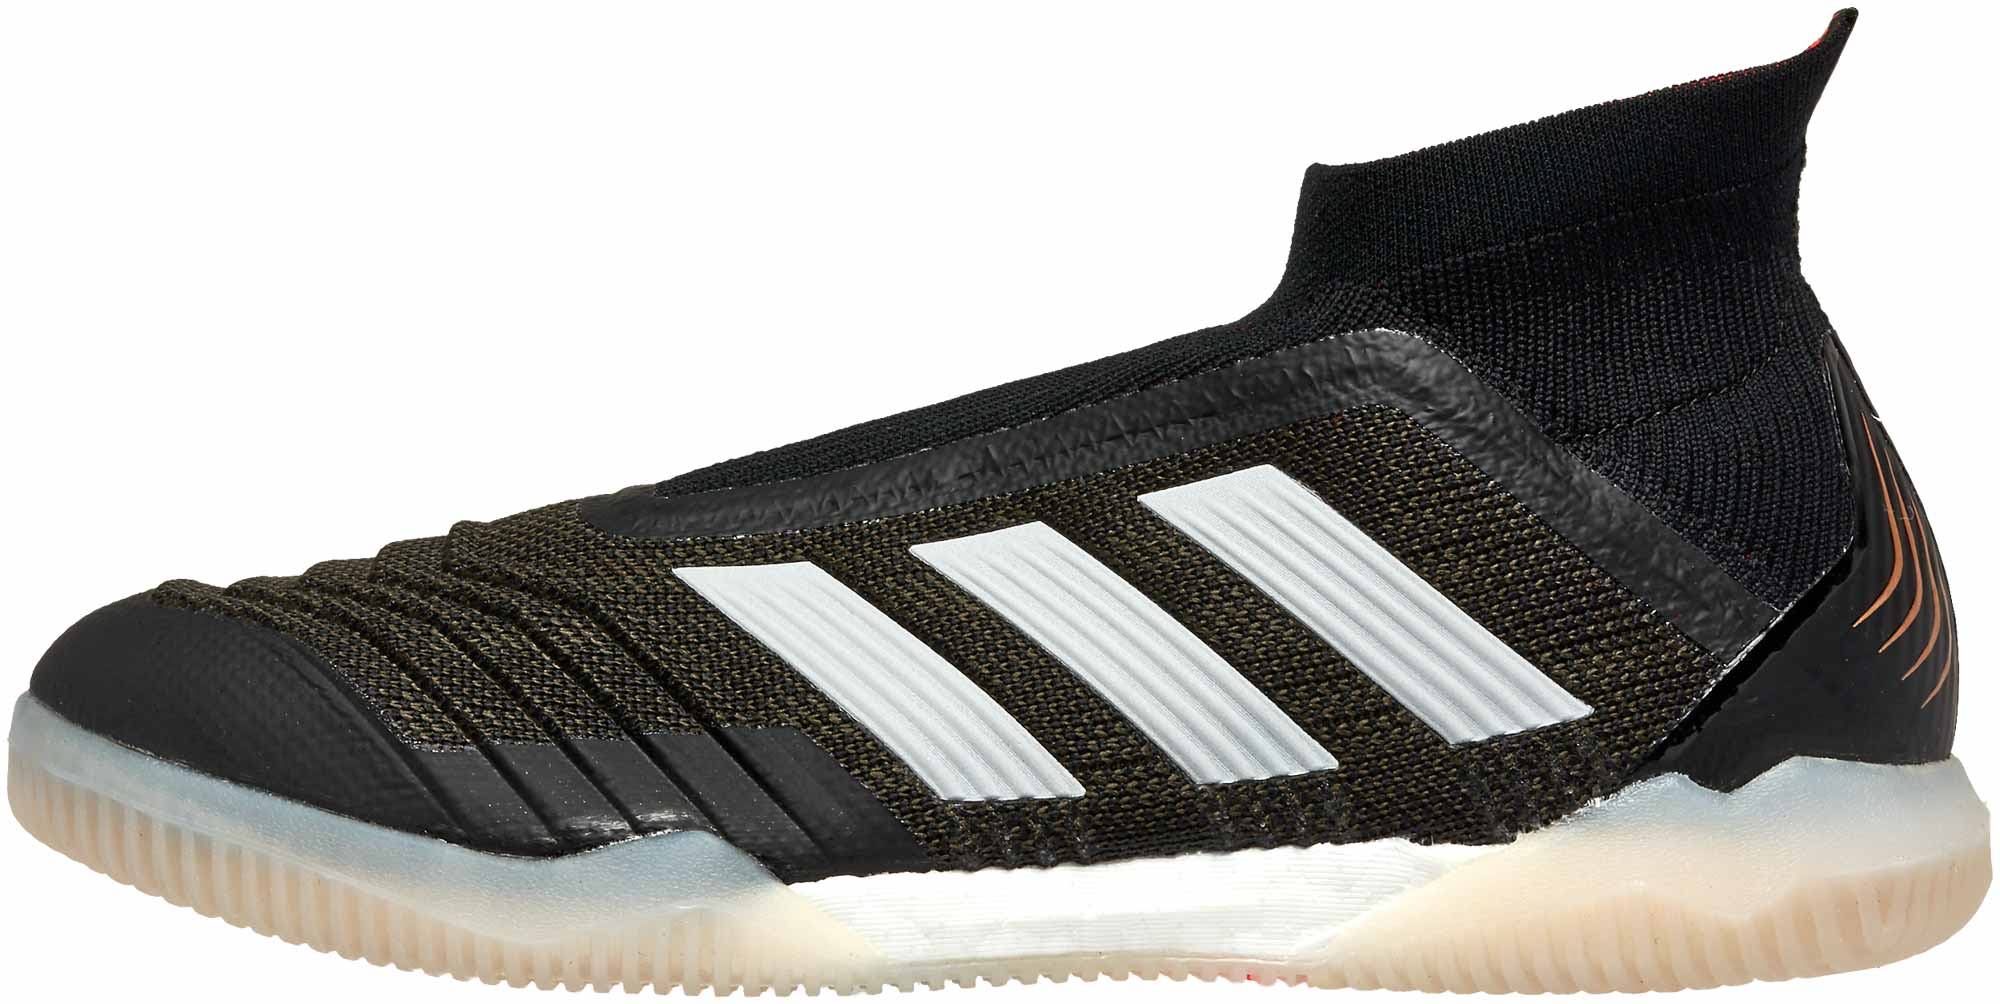 Adidas Black On Black Youth Soccer Shoes